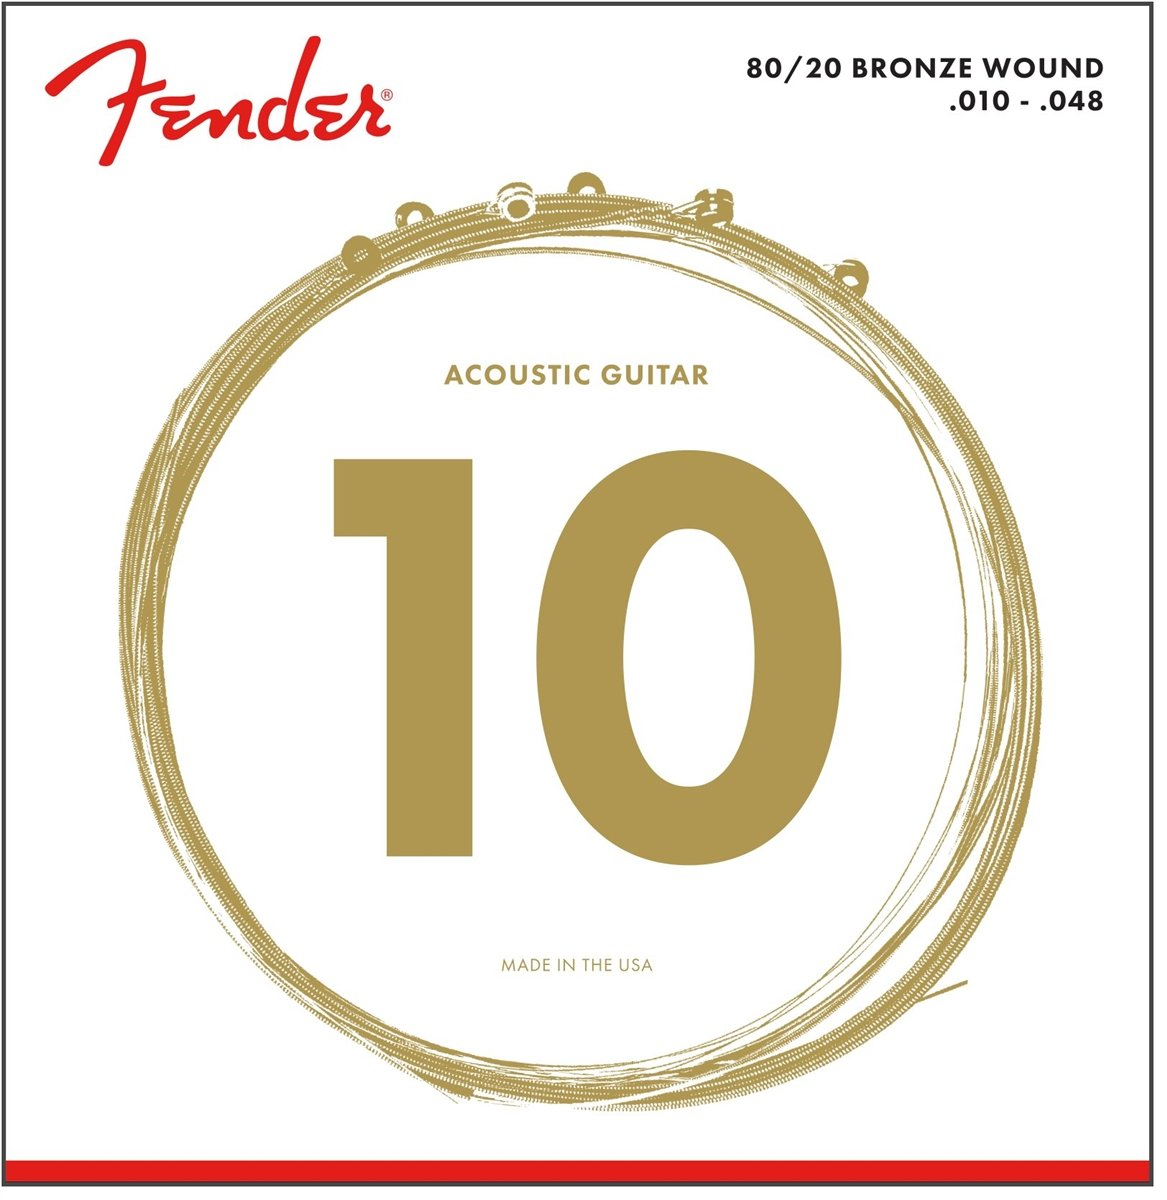 Fender Accessories 073-0070-403 80/20 Bronze Acoustic Guitar Strings, Light 0730070403